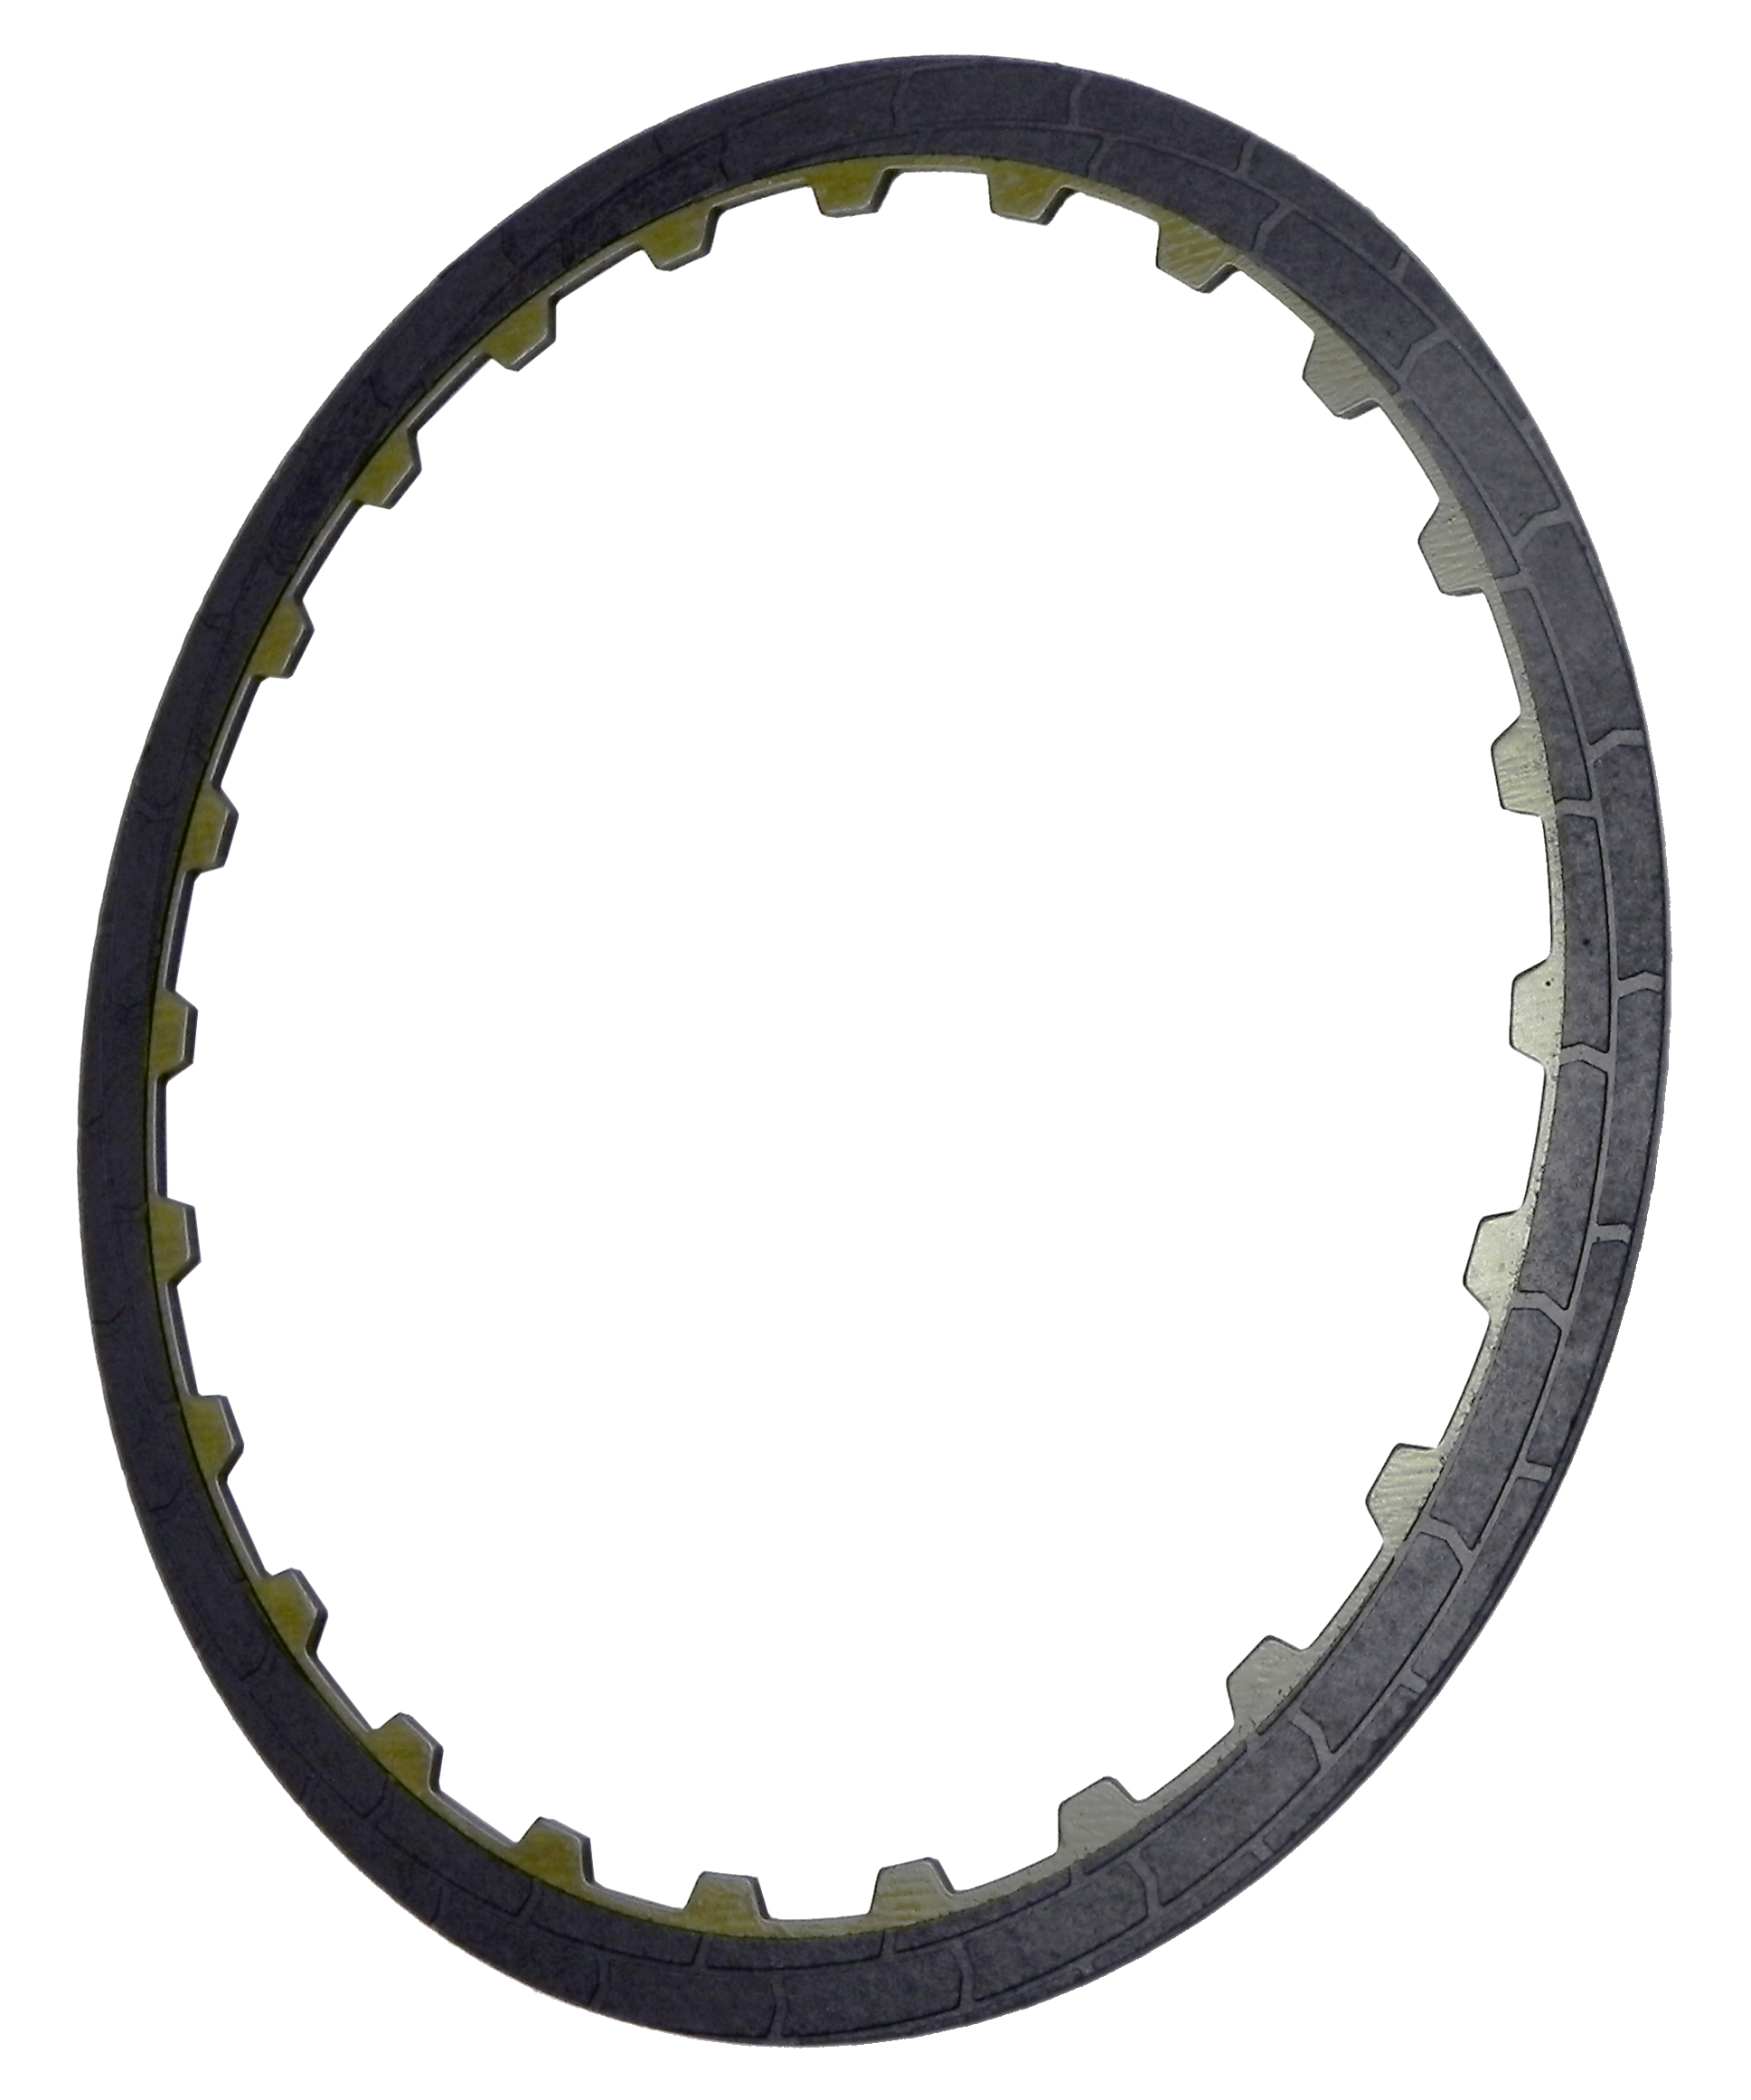 RH573585 | 2008-ON Friction Clutch Plate (HT) Hybrid Technology Direct Clutch Proprietary High Energy (HT)